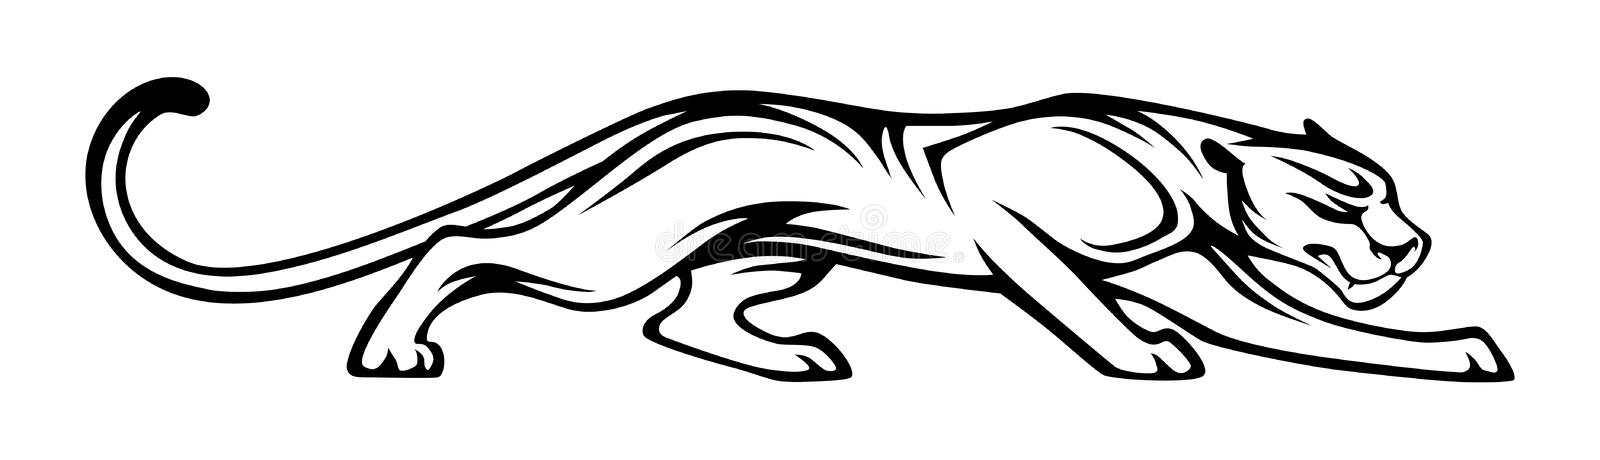 Stylized silhouette of panther. Vector animal illustration, black isolated on white background. Graphic image for tattoo, logo or vector illustration